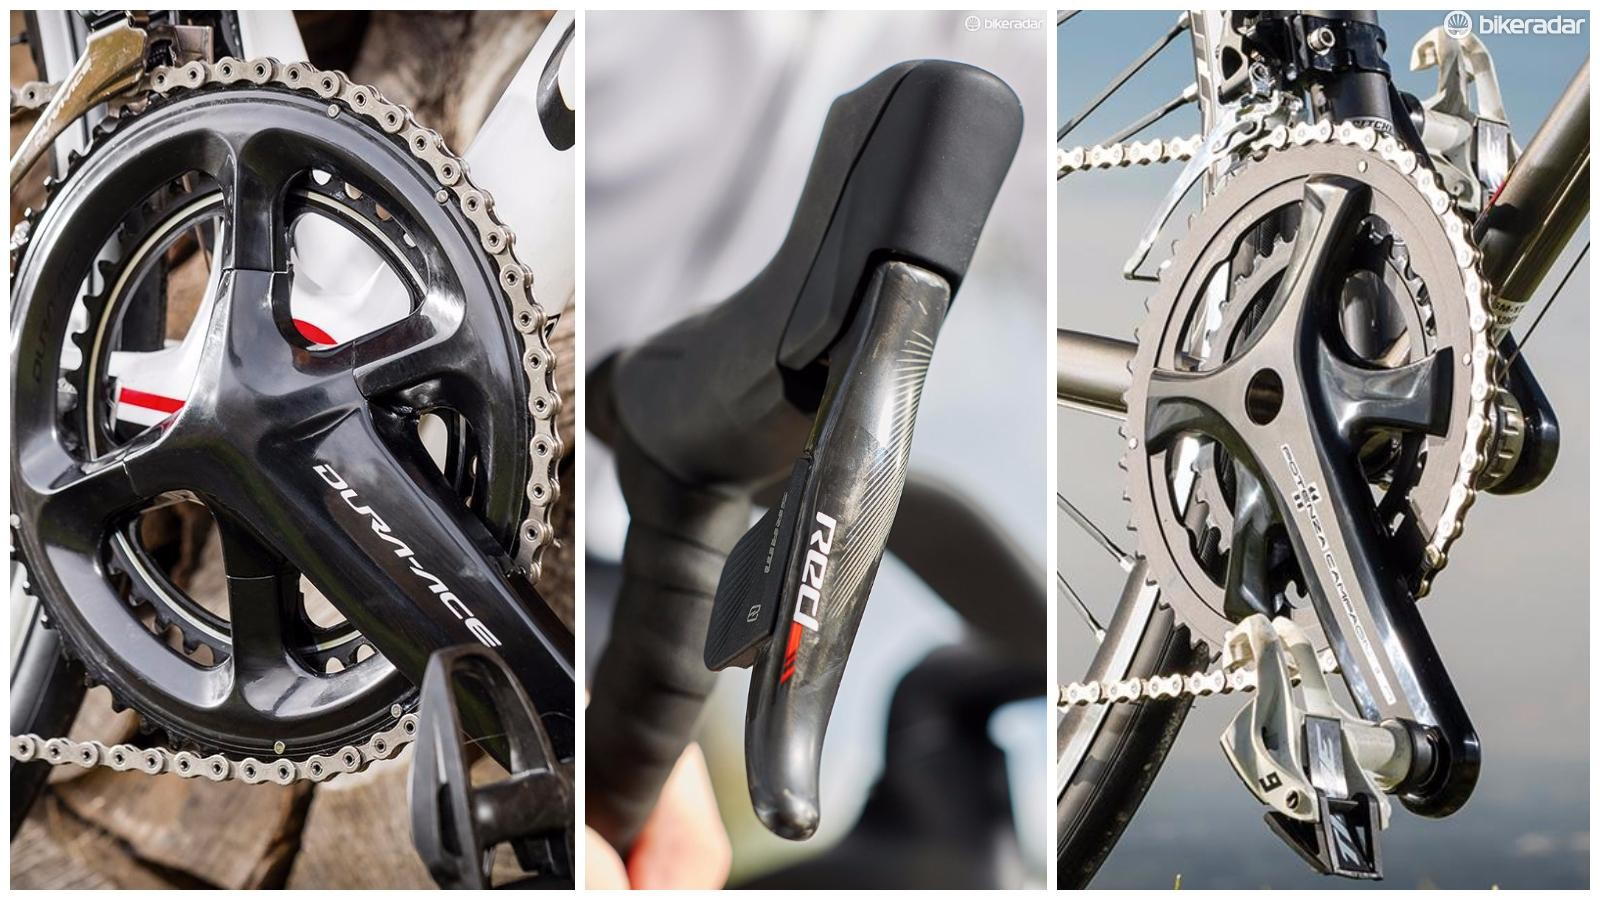 Check out our road bike groupset buyer's guide to learn more about what makes your bike stop and go